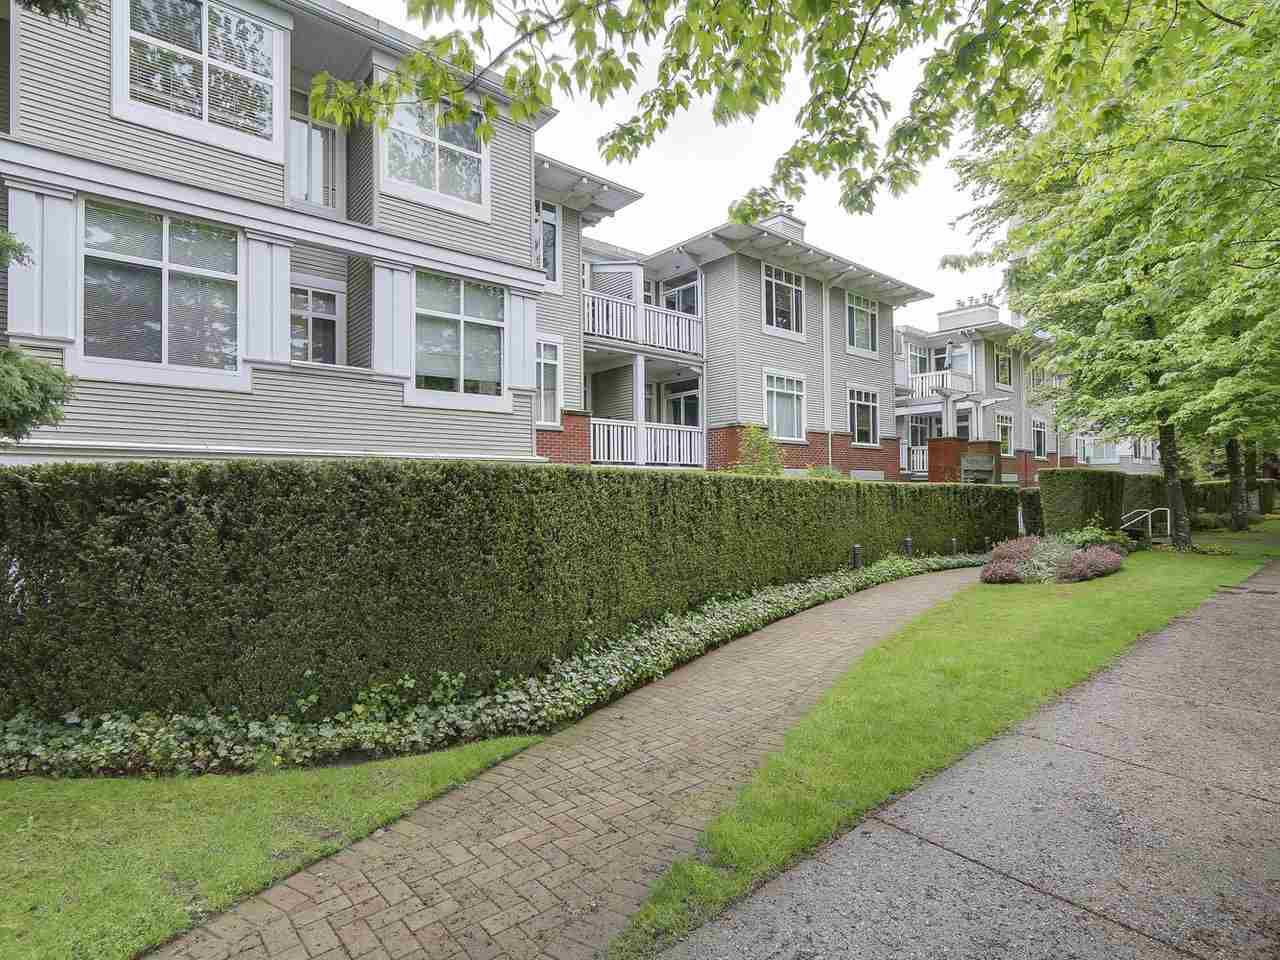 """Main Photo: 207 1675 W 10TH Avenue in Vancouver: Fairview VW Condo for sale in """"NORFOLK HOUSE"""" (Vancouver West)  : MLS®# R2169058"""